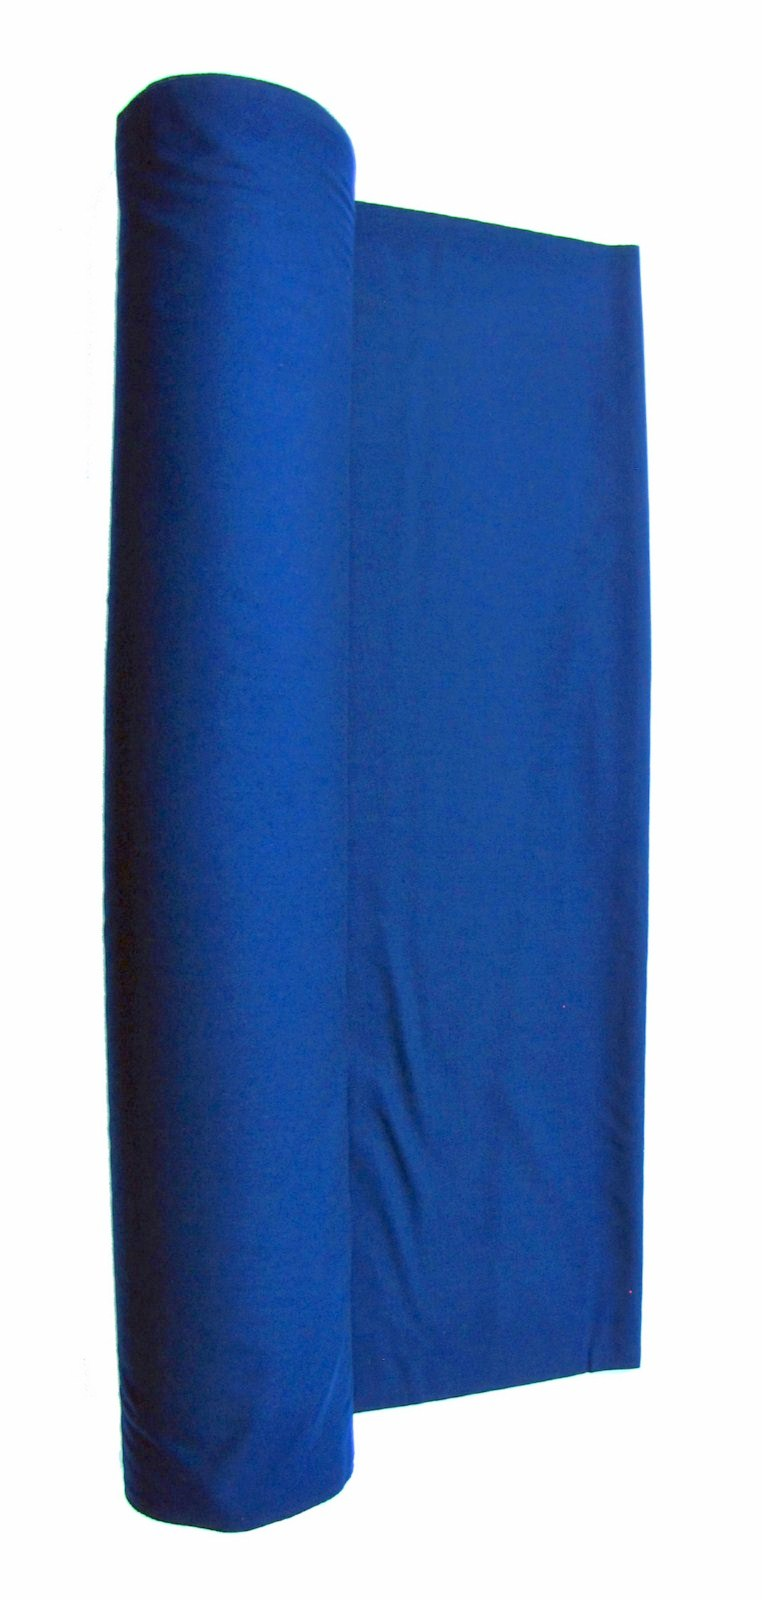 21 Ounce Pool Table Felt - Billiard Cloth Blue